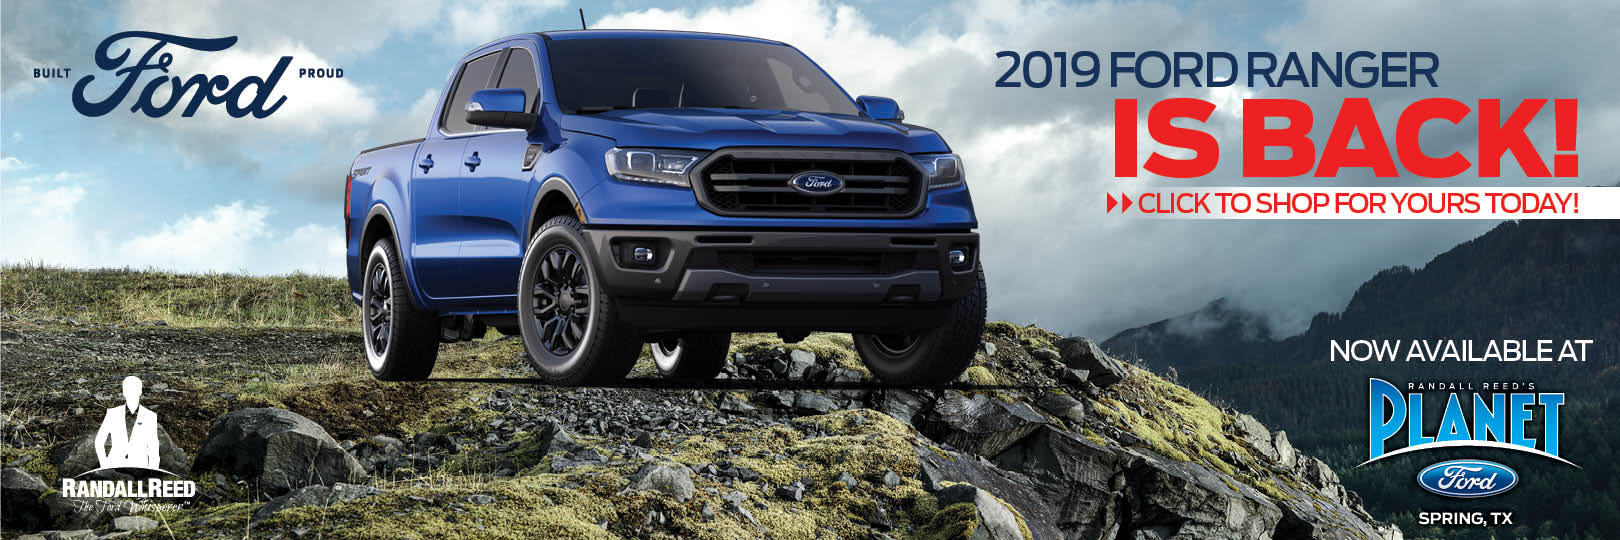 NEW 2019 FORD RANGER!